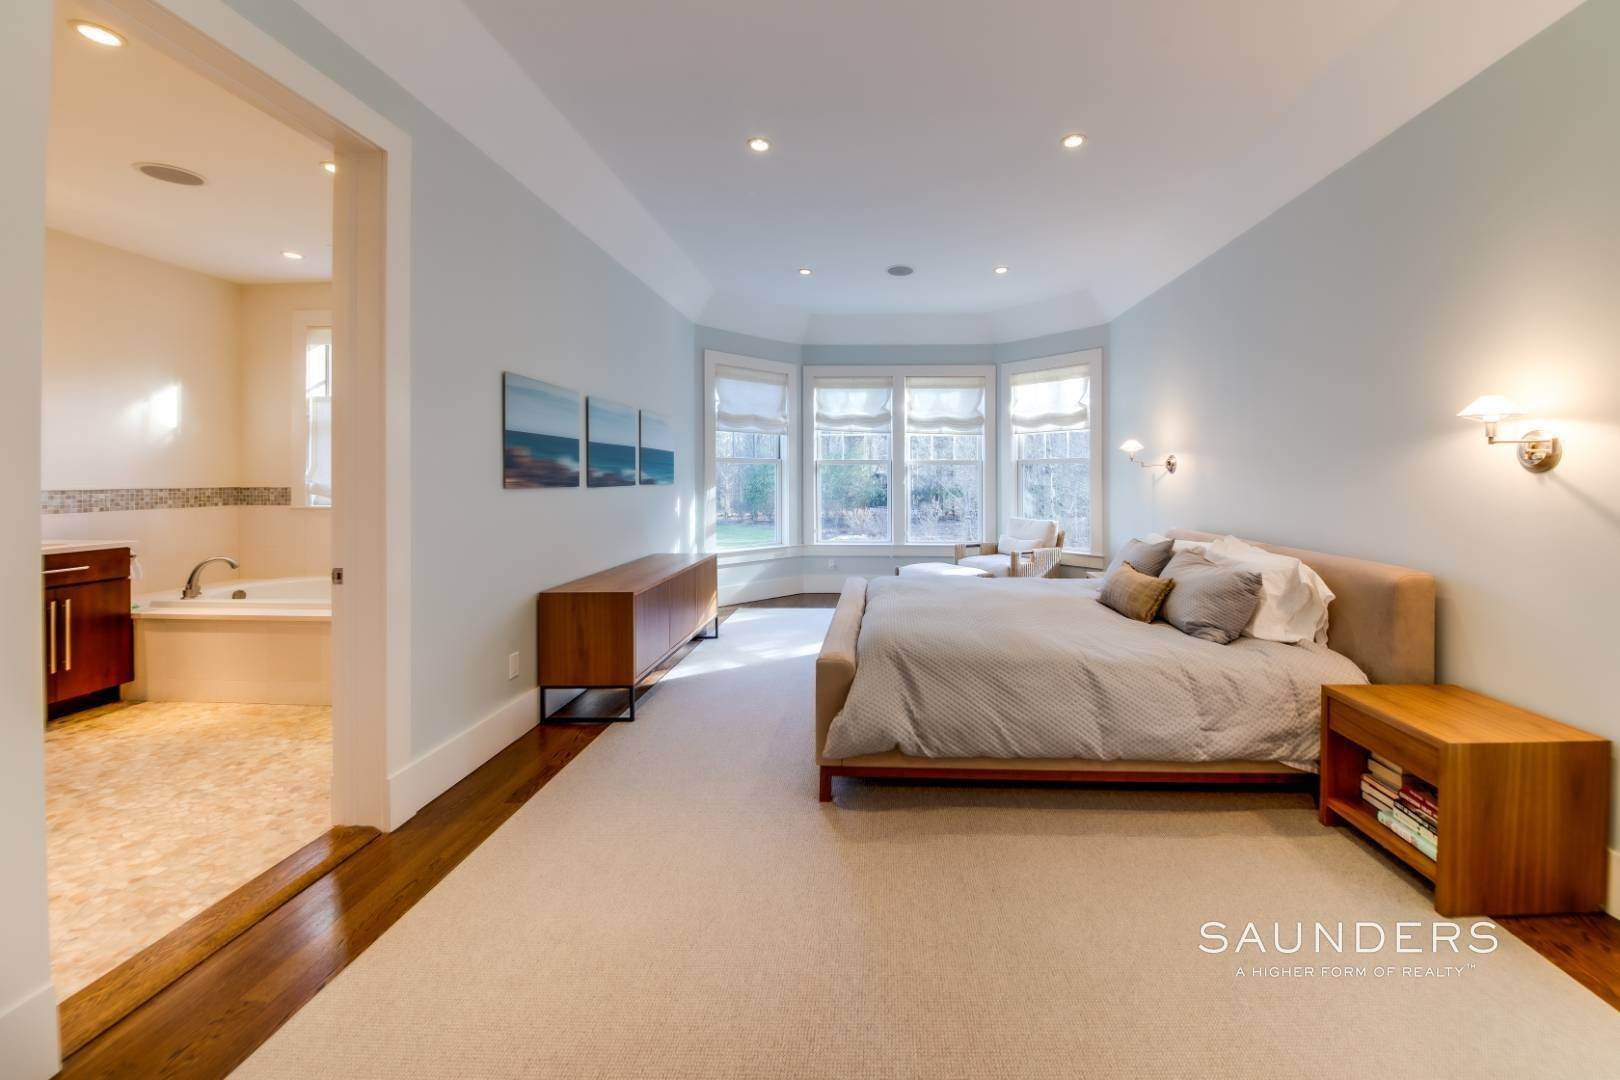 13. Single Family Homes for Sale at Wainscott South Traditional Near Beach Lane 10 Merriwood Drive, Wainscott, East Hampton Town, NY 11975